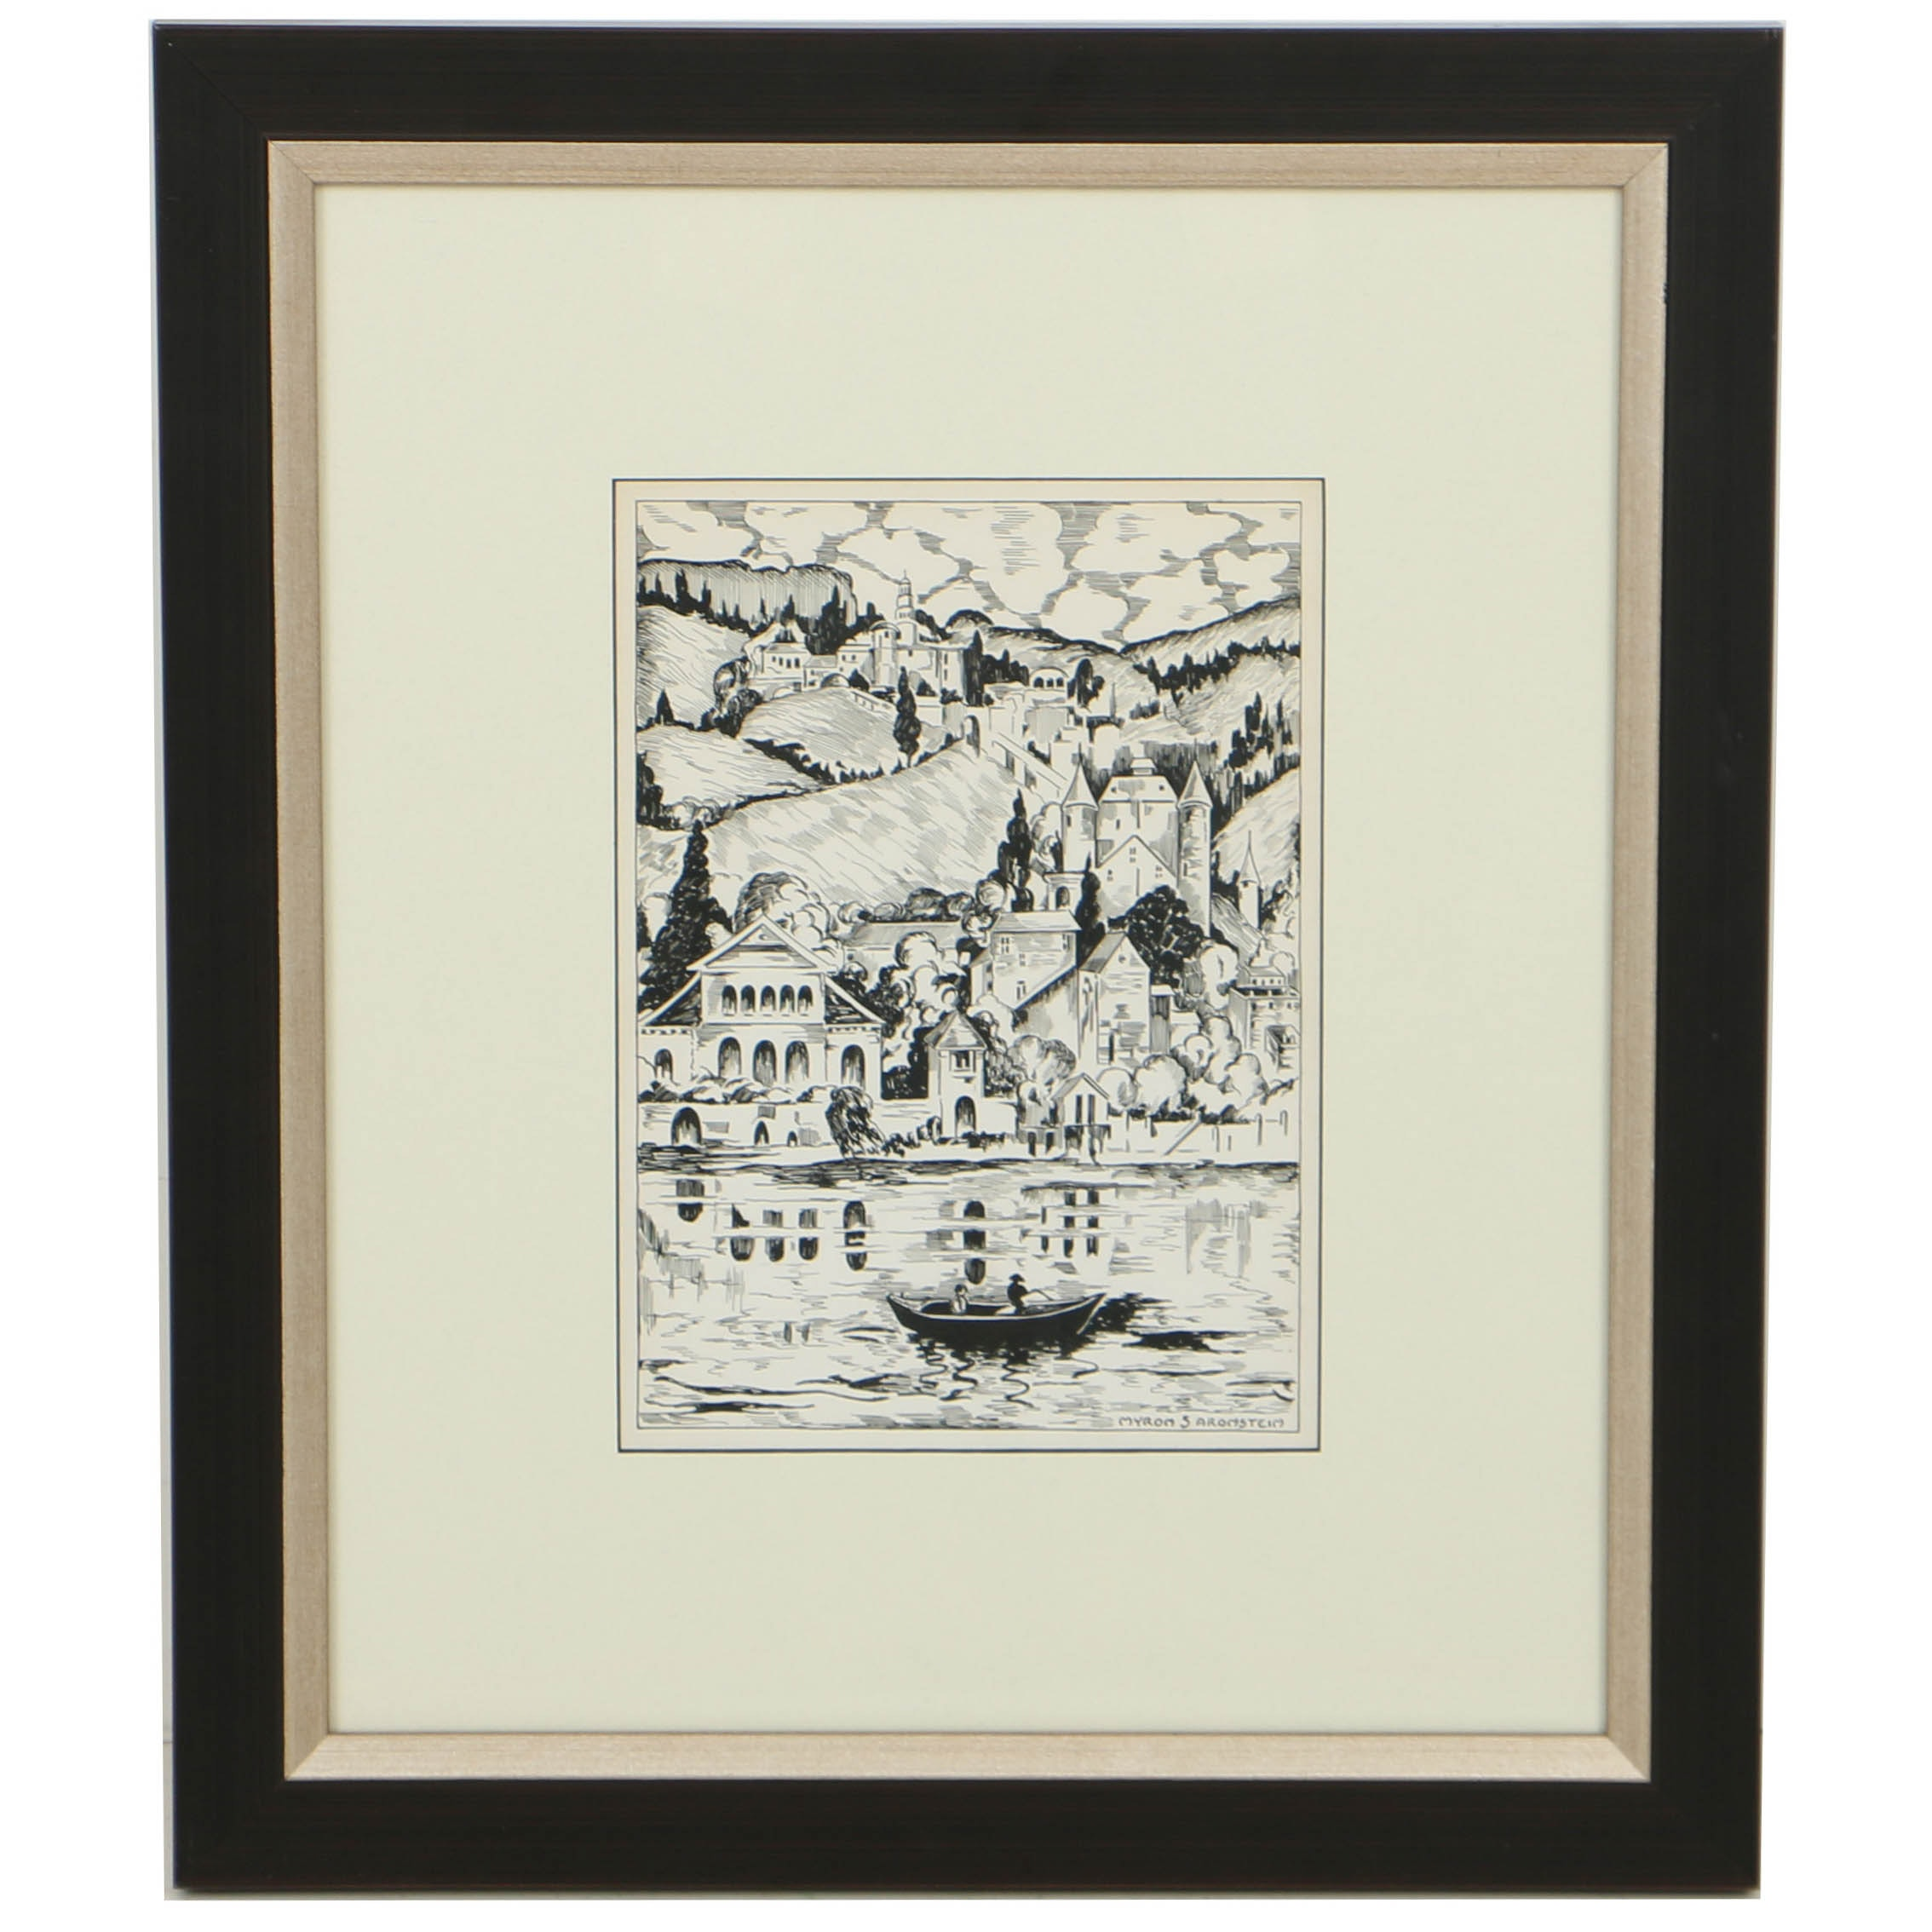 Myron Aronstein Ink Drawing on Paper of Coastal Townscape